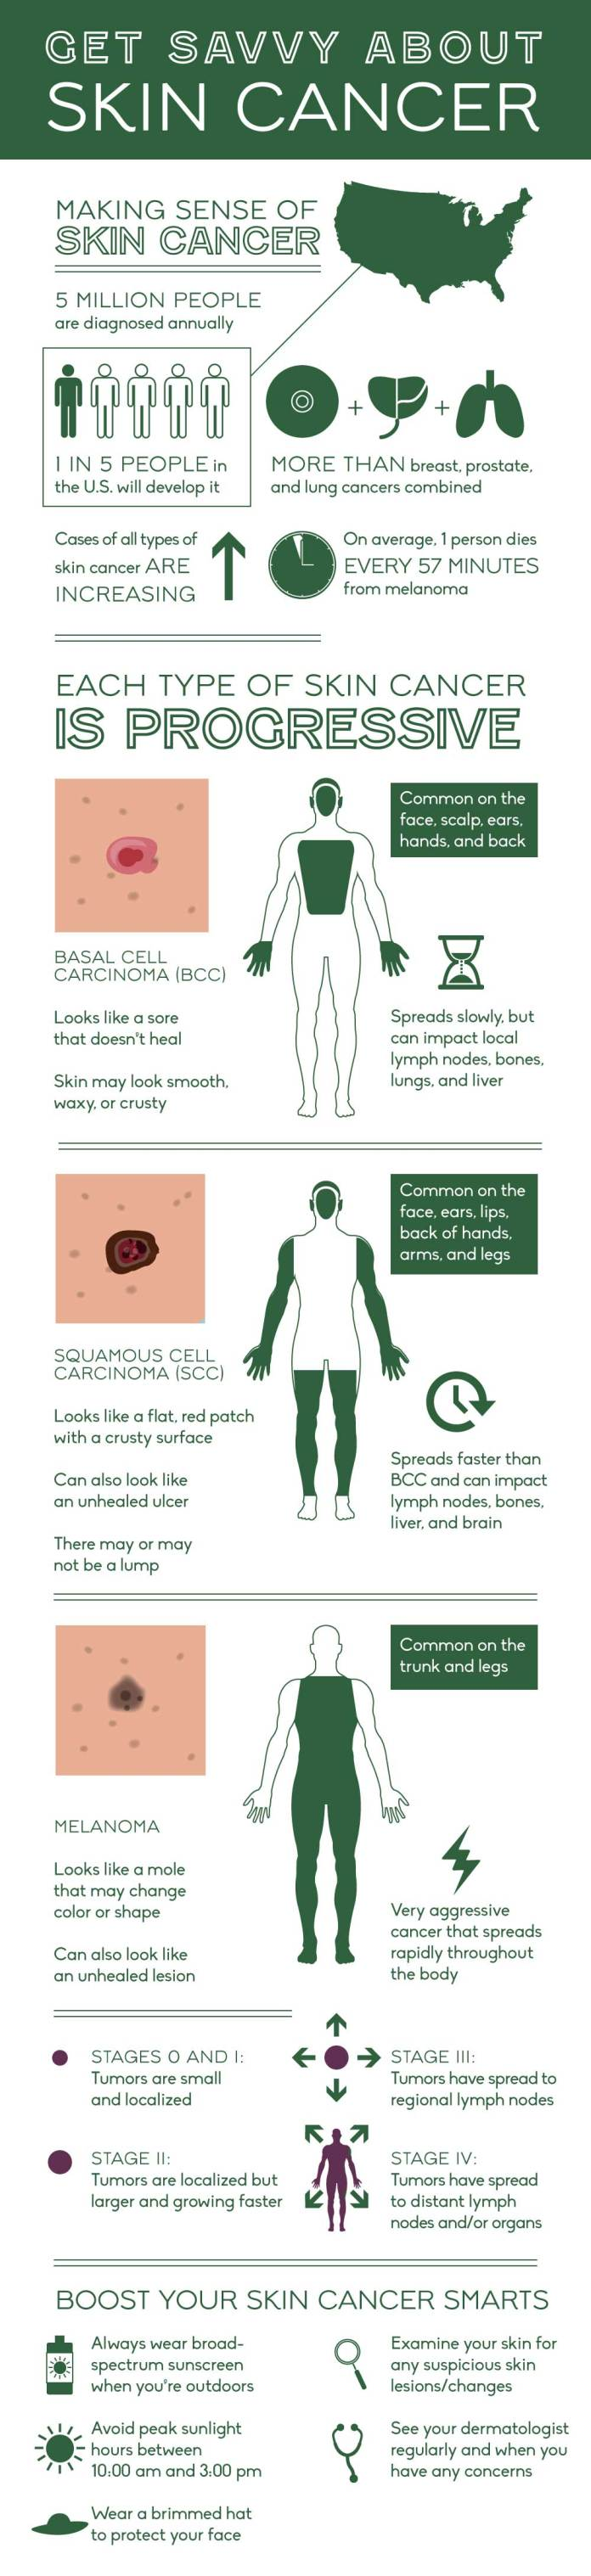 How to detect skin cancer on your skin. Full body infographic